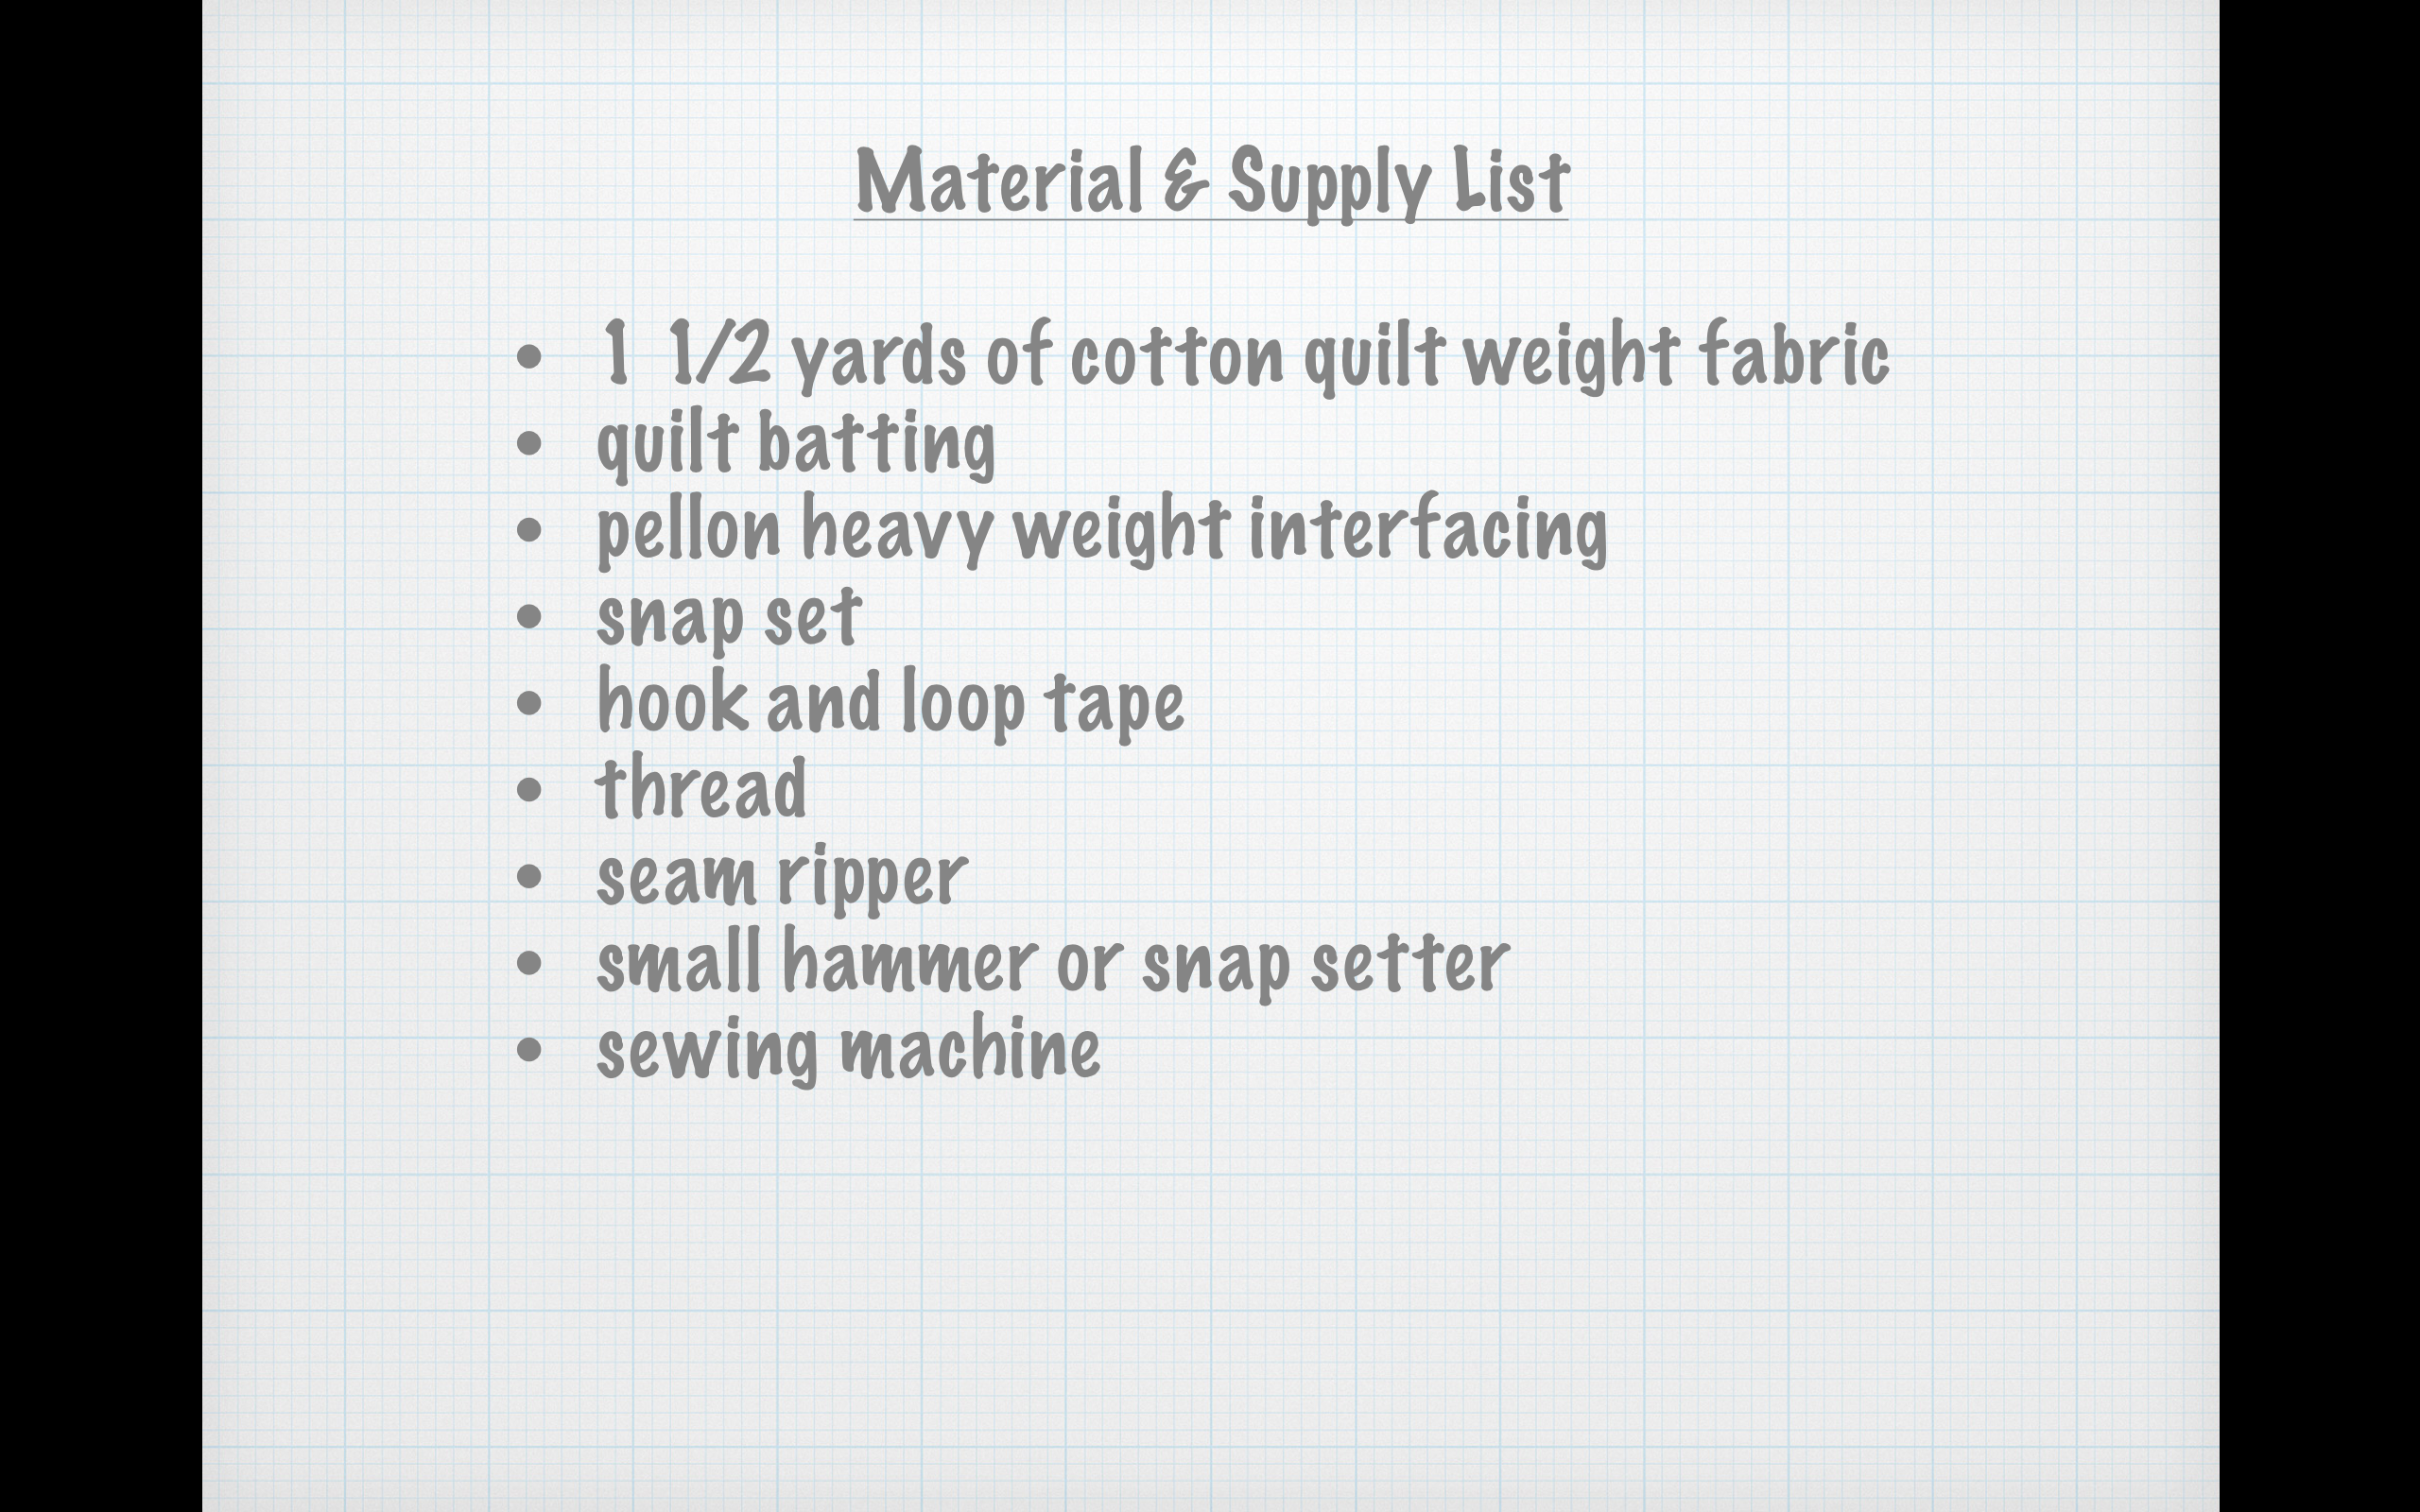 Material & Supply List